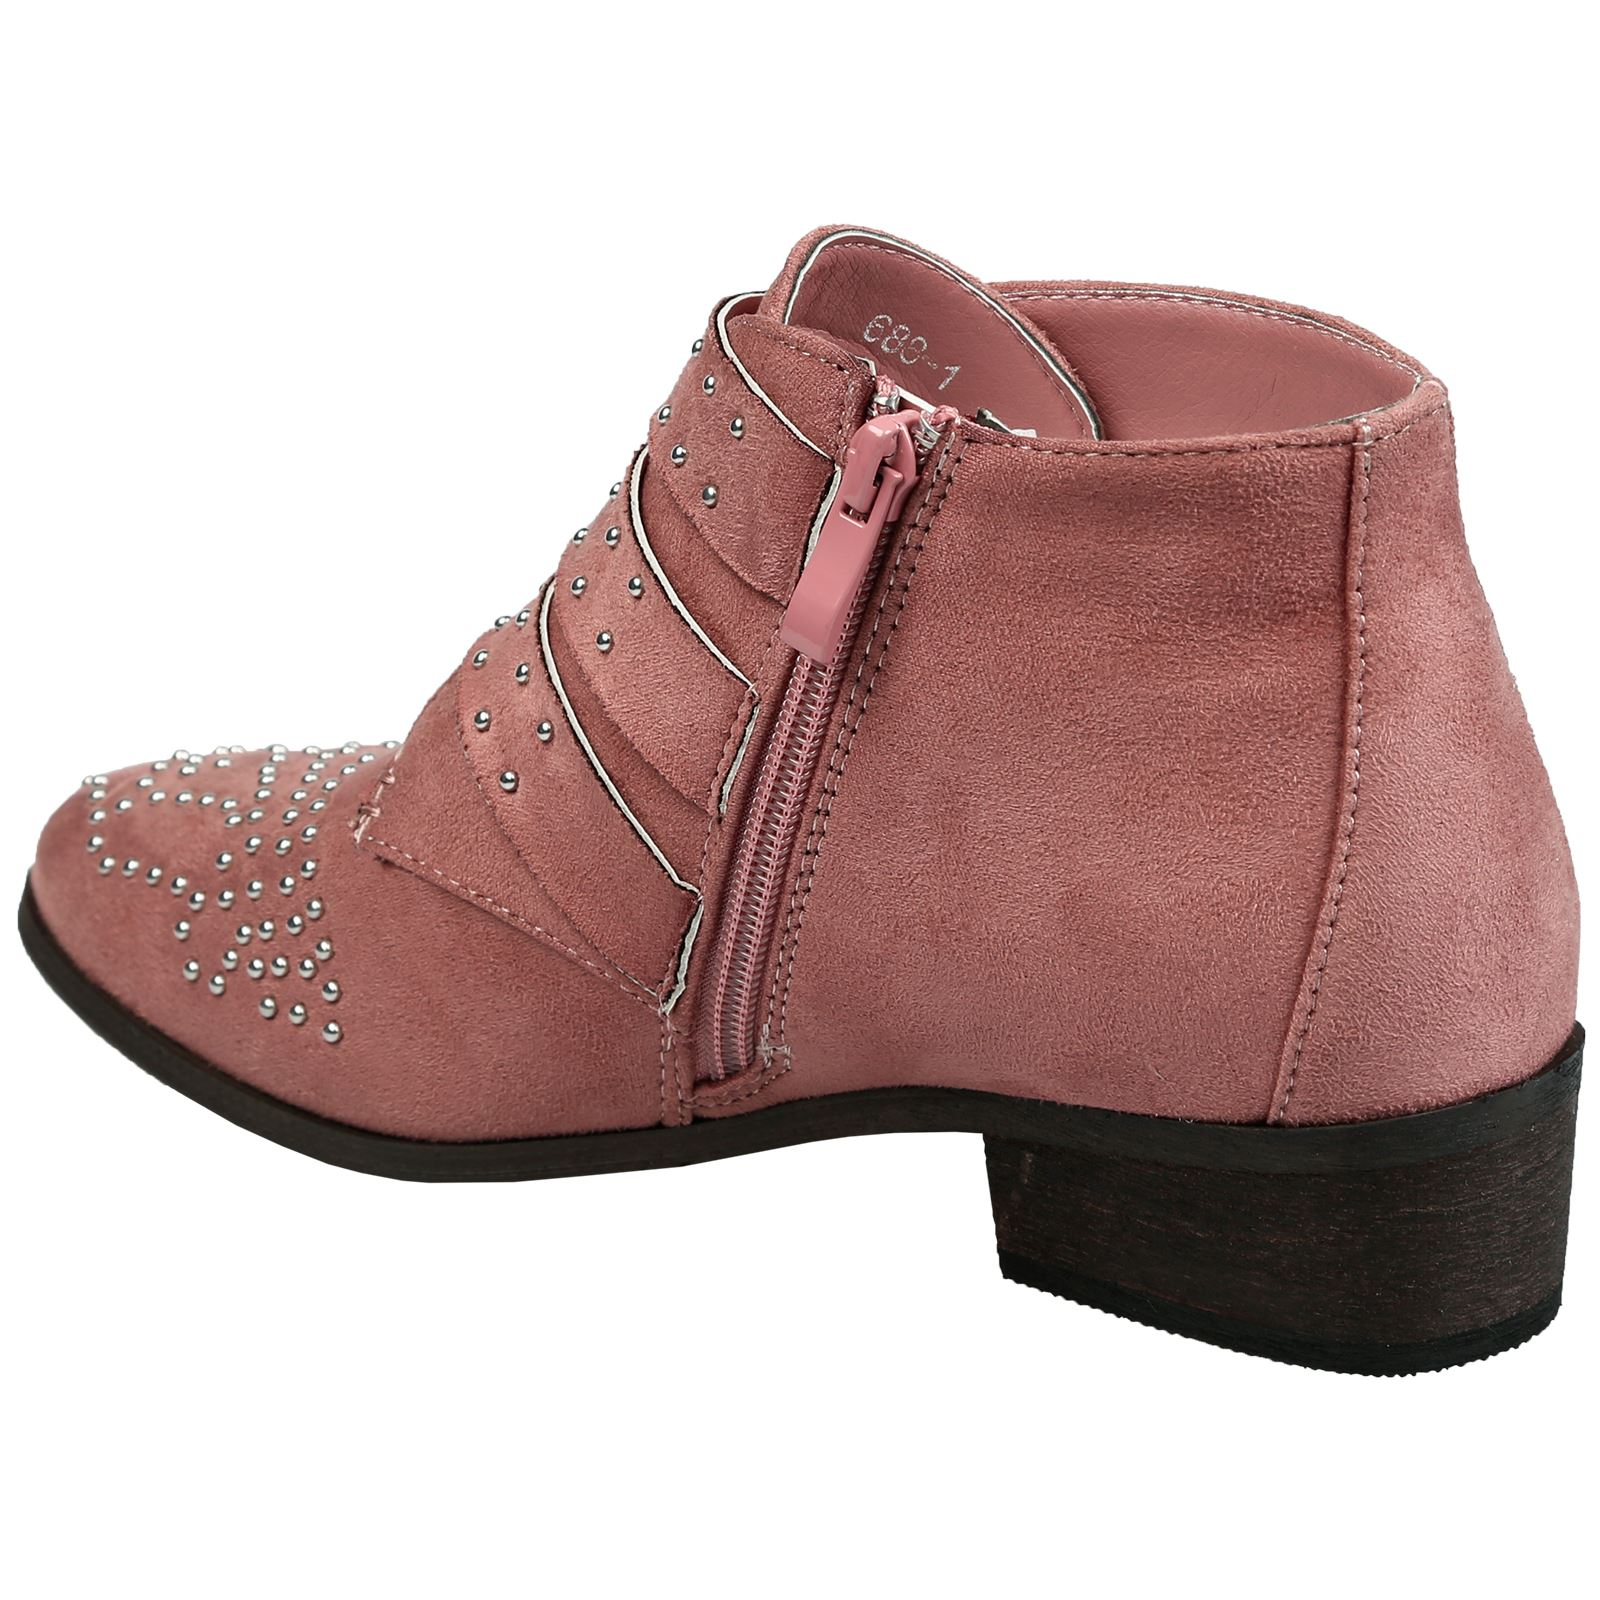 Liv-Womens-Flats-Low-Heels-Buckle-Strappy-Biker-Ankle-Boots-Ladies-Shoes-Studded thumbnail 29